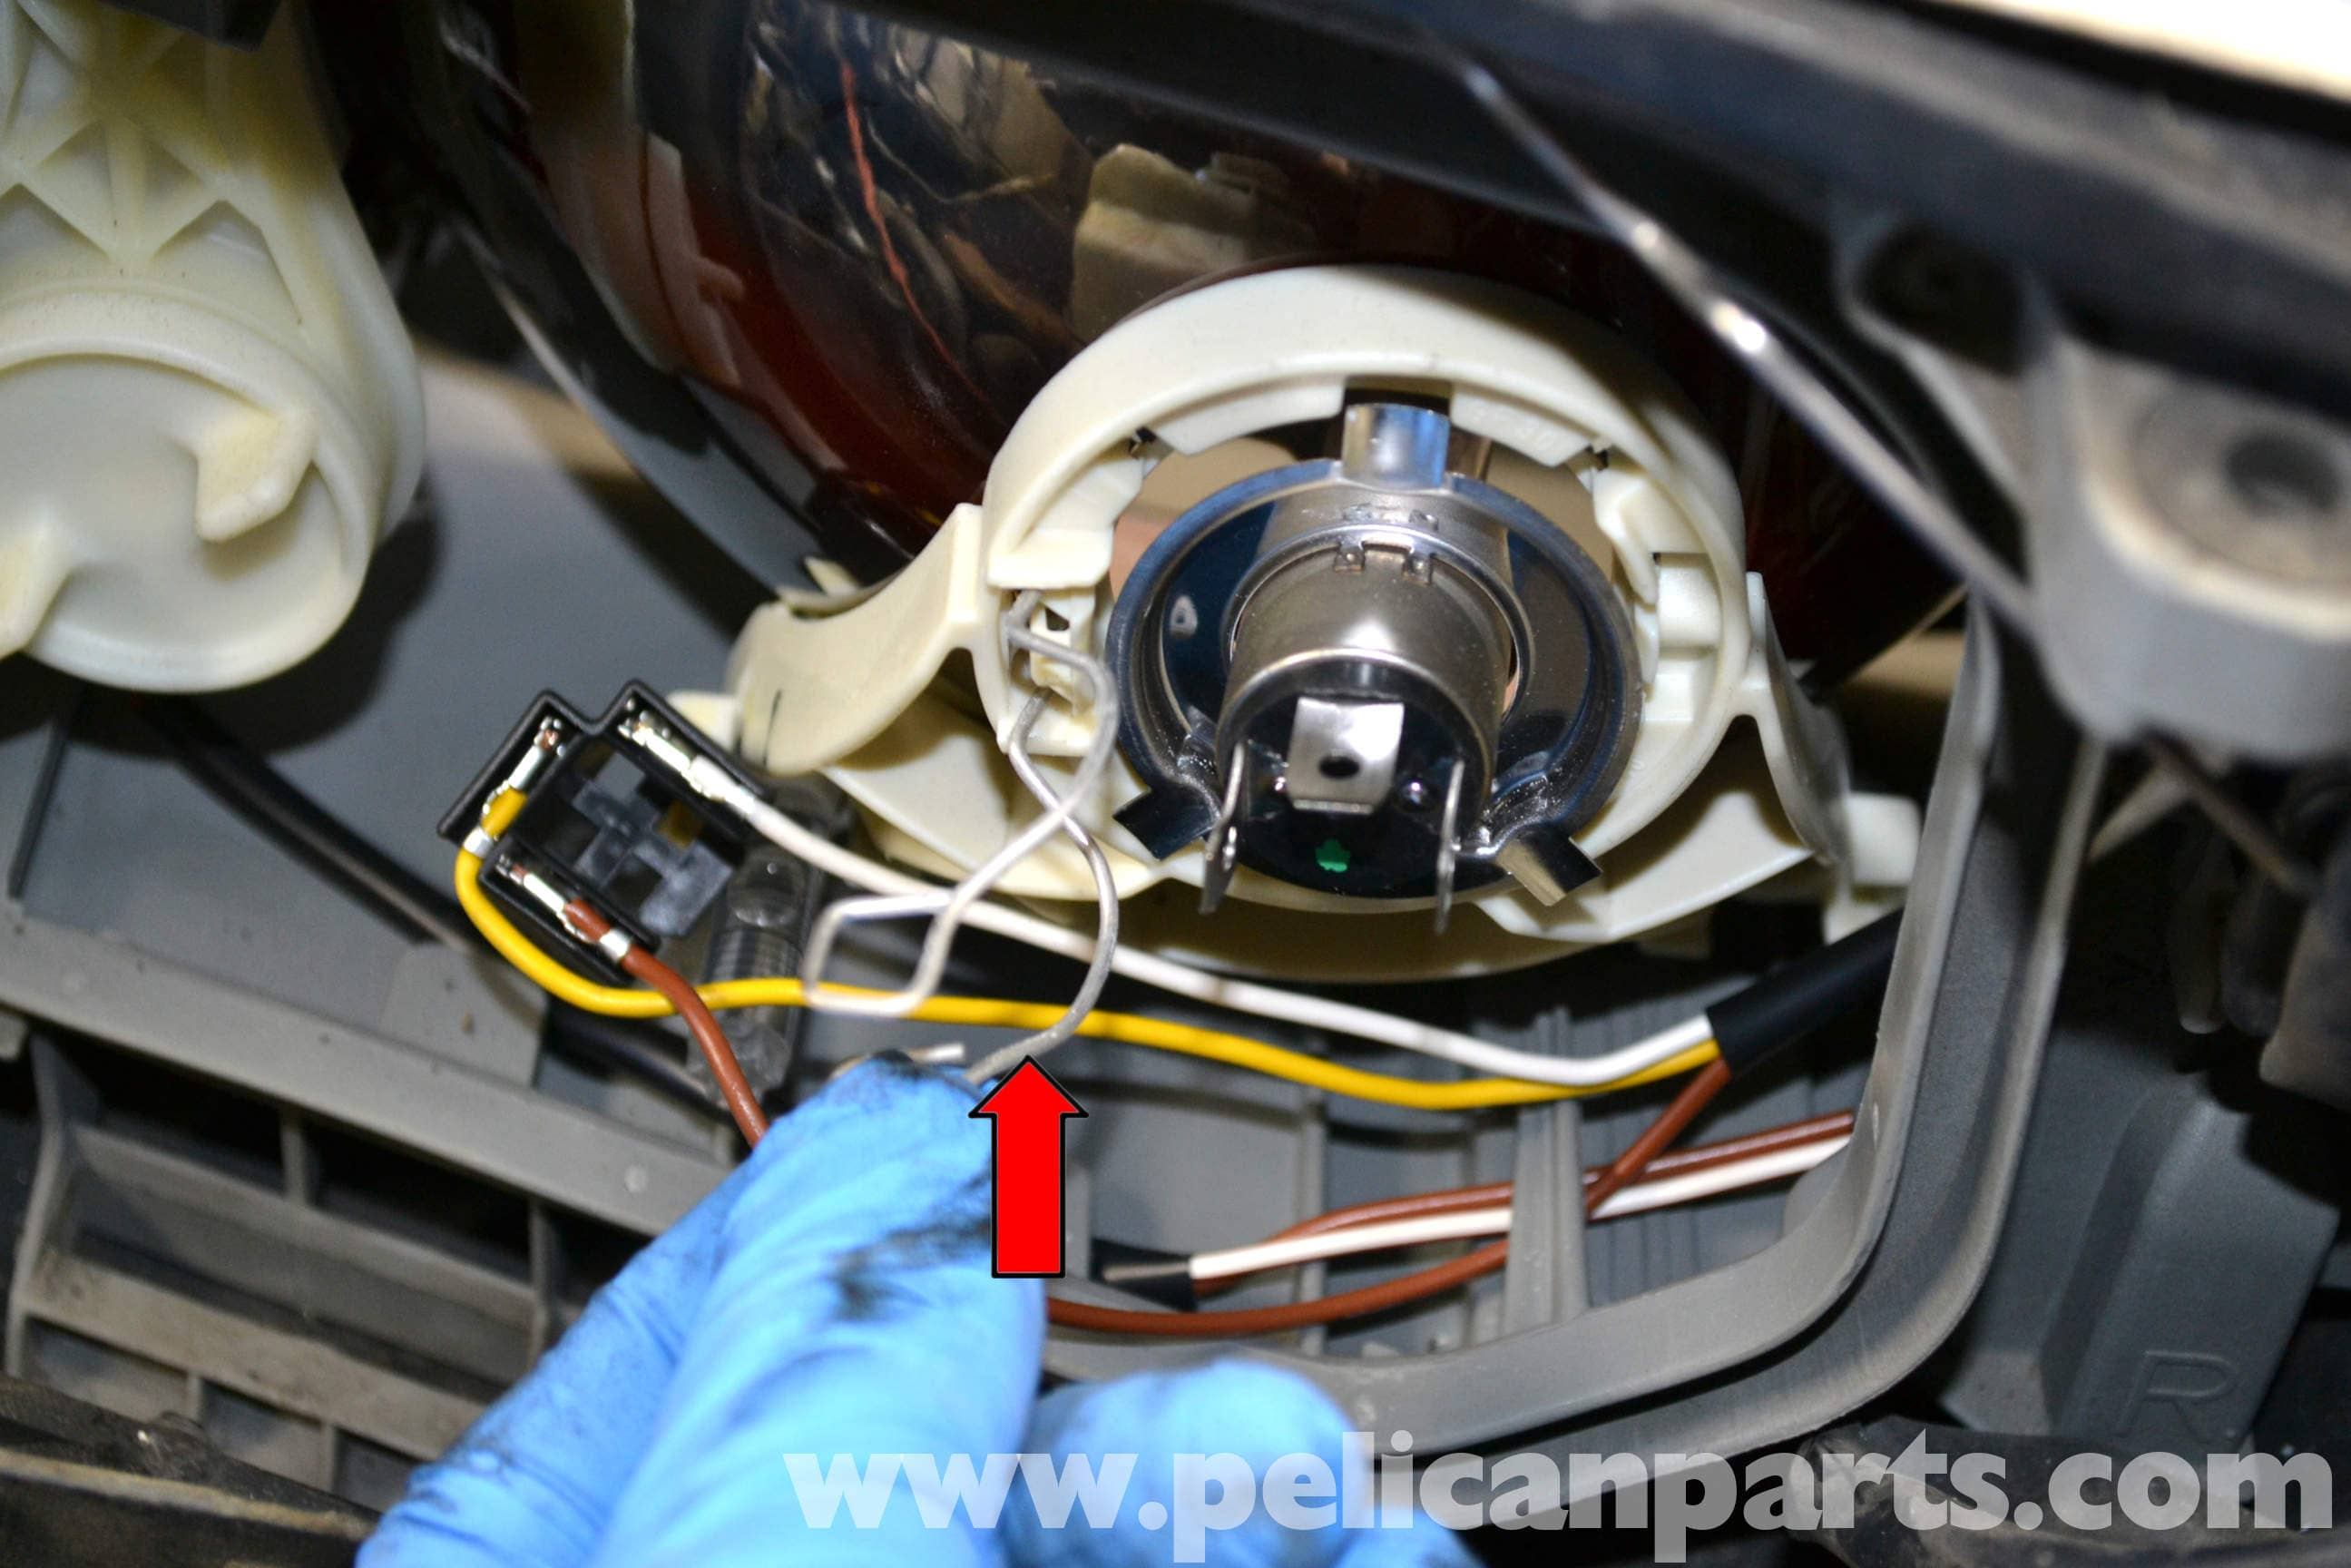 Mercedes-Benz W124 Headlight Assembly and Bulb Replacement